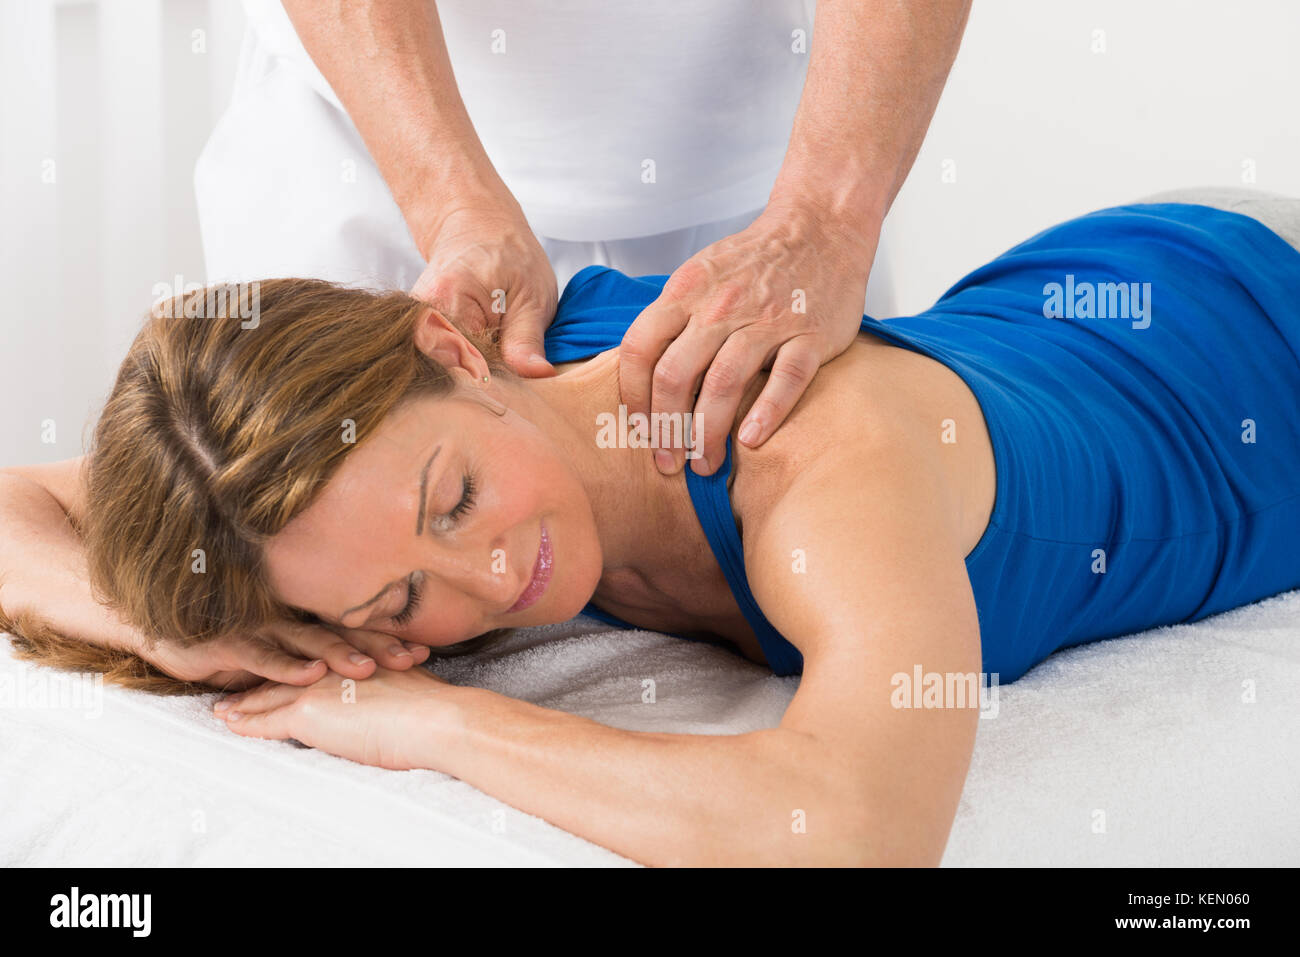 Giving massage mature woman